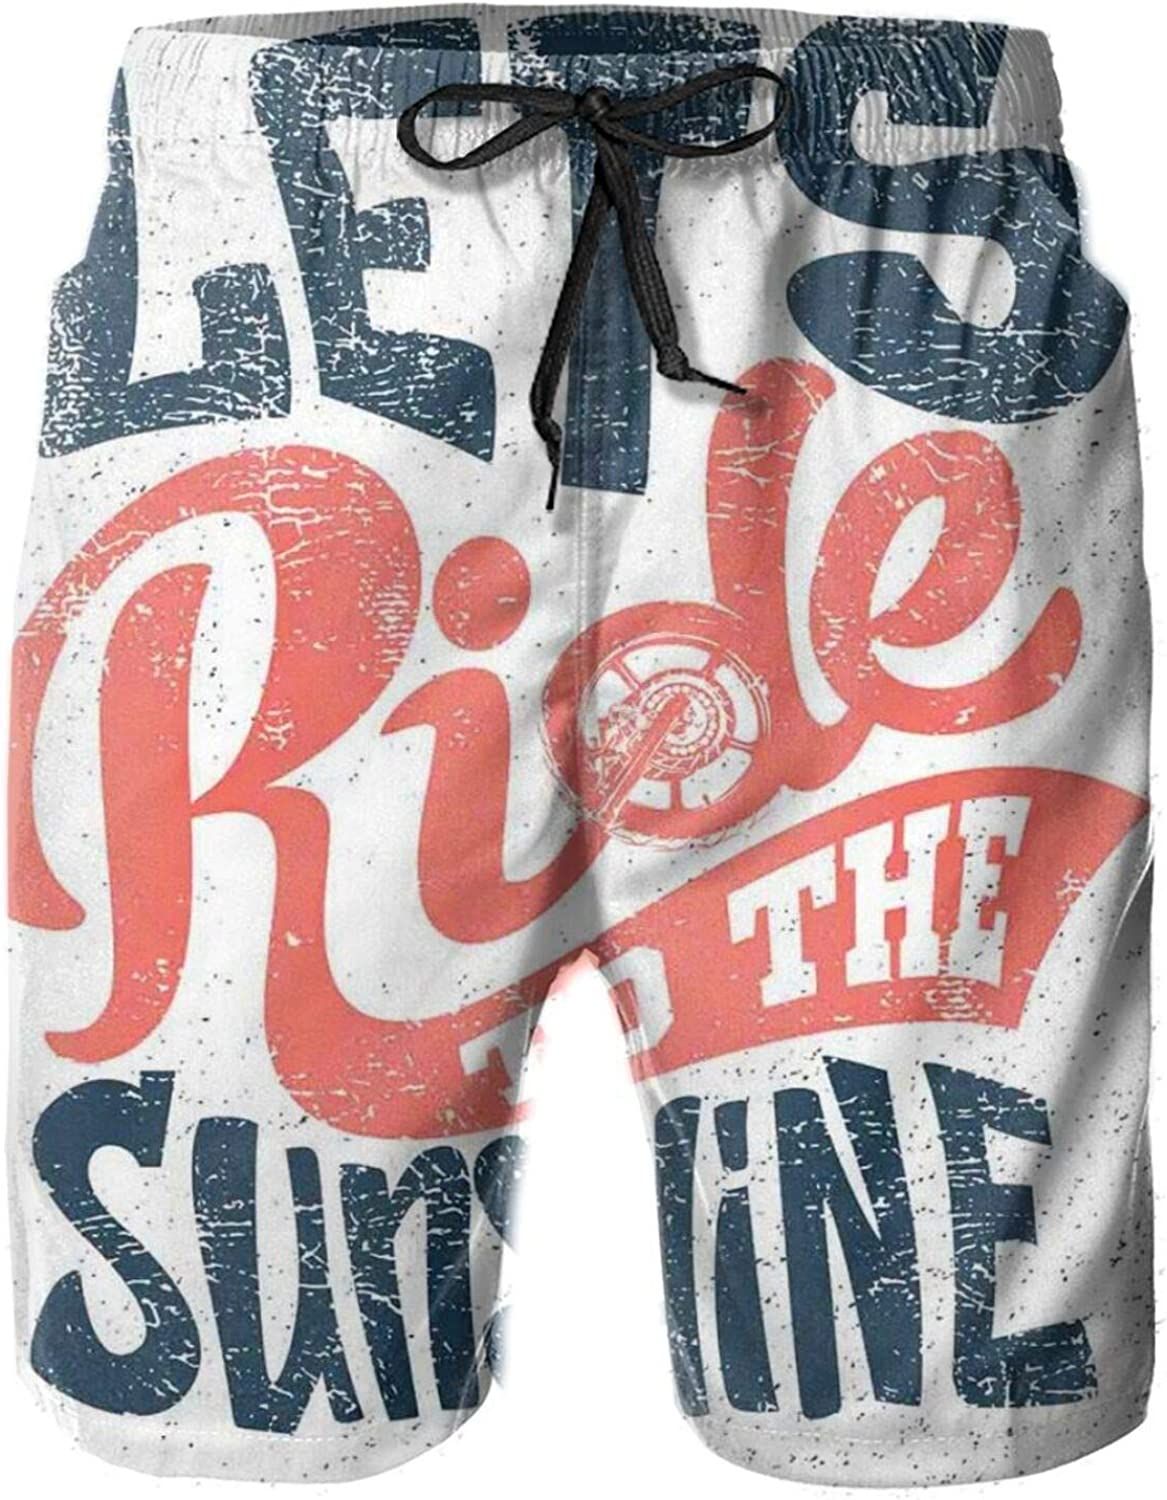 Lets Ride to The Sunshine Summer Biker Quote Grunge Freedom Message Drawstring Waist Beach Shorts for Men Swim Trucks Board Shorts with Mesh Lining,L